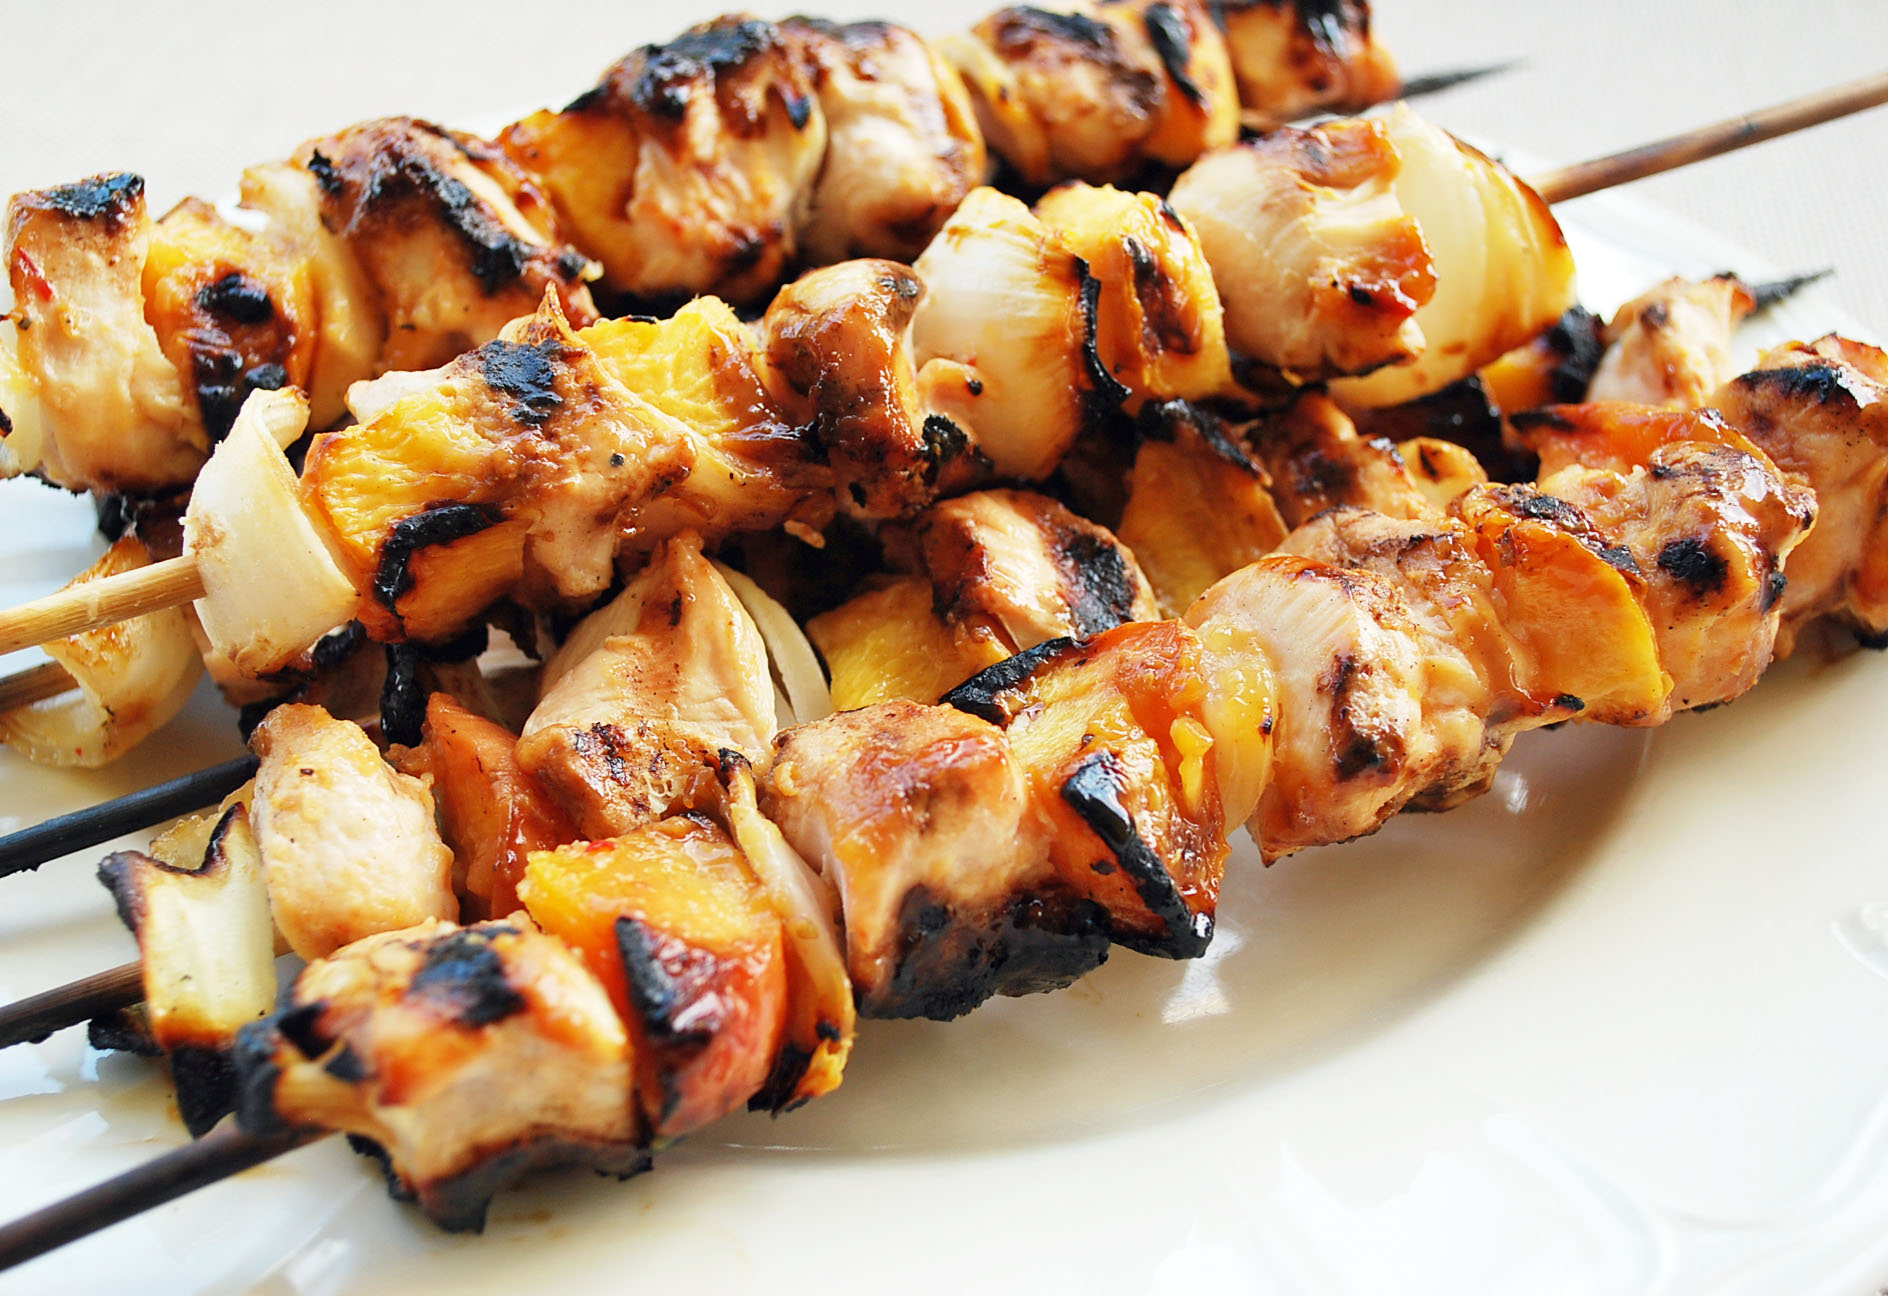 Georgia peach chicken kabobs use in-season fresh, local peaches and fresh Vidalia onions. This delicious and easy chicken kabobs recipe is a family favorite